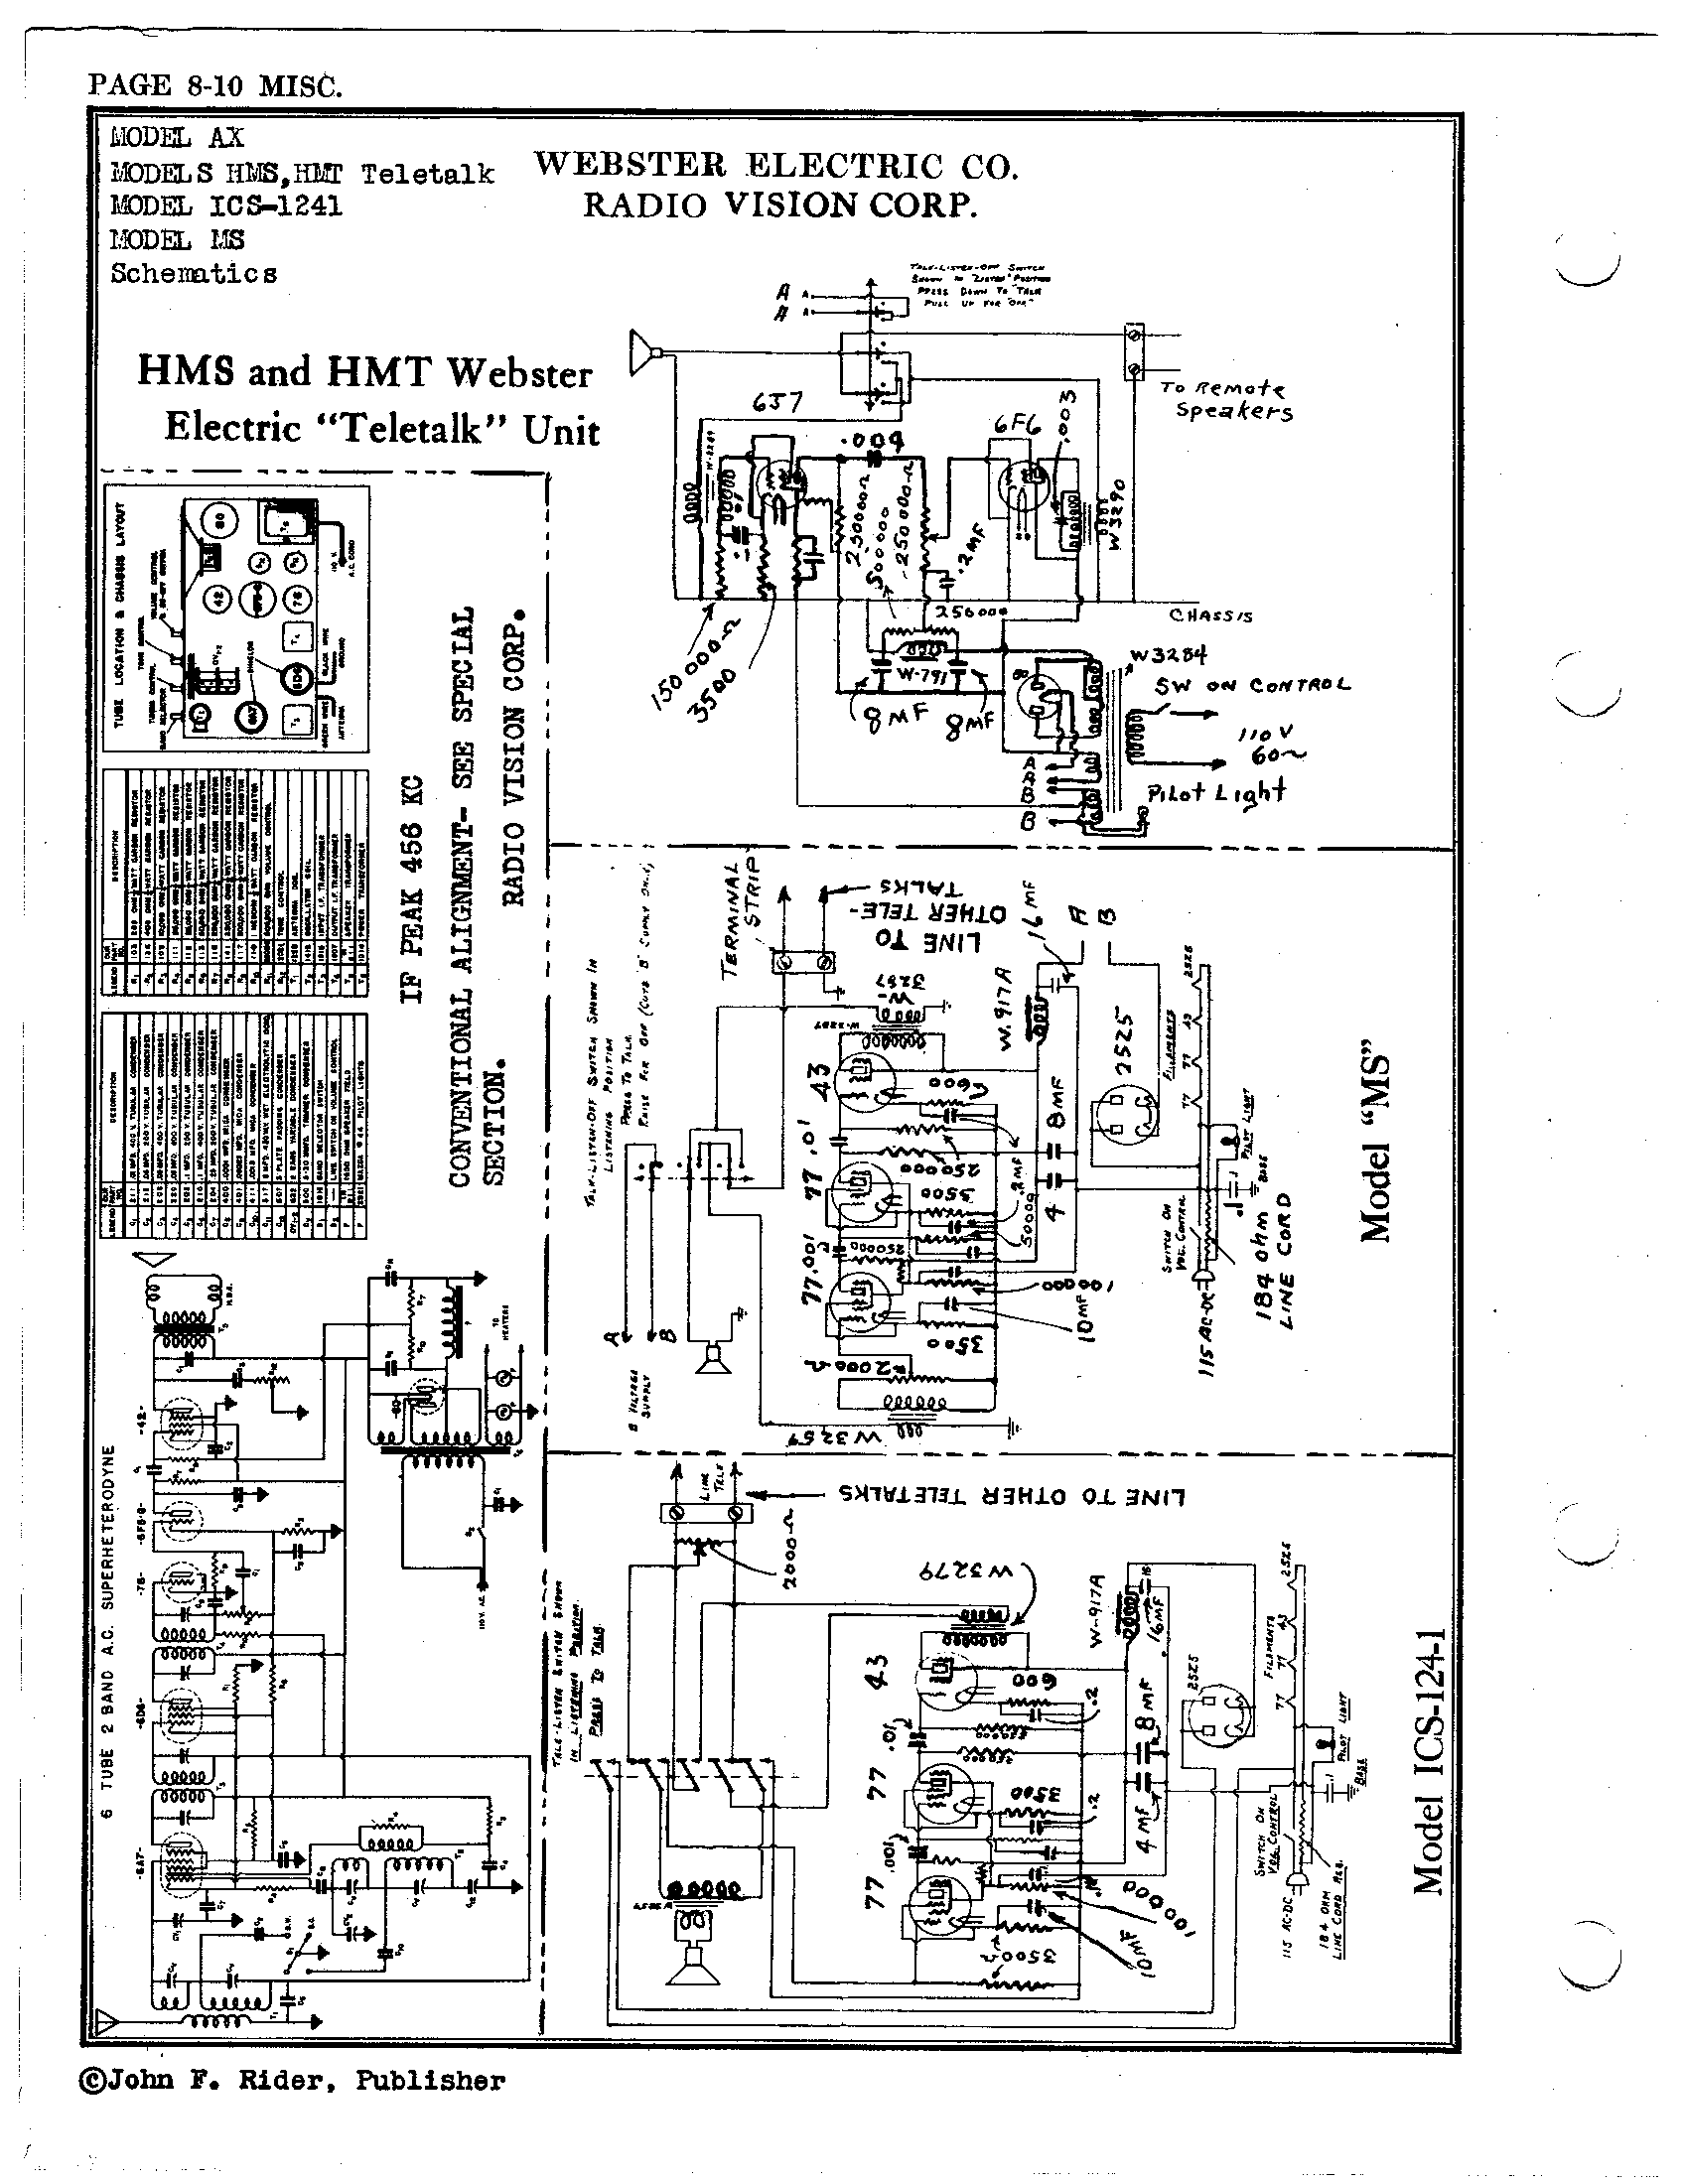 Wiring Schematics And Switches